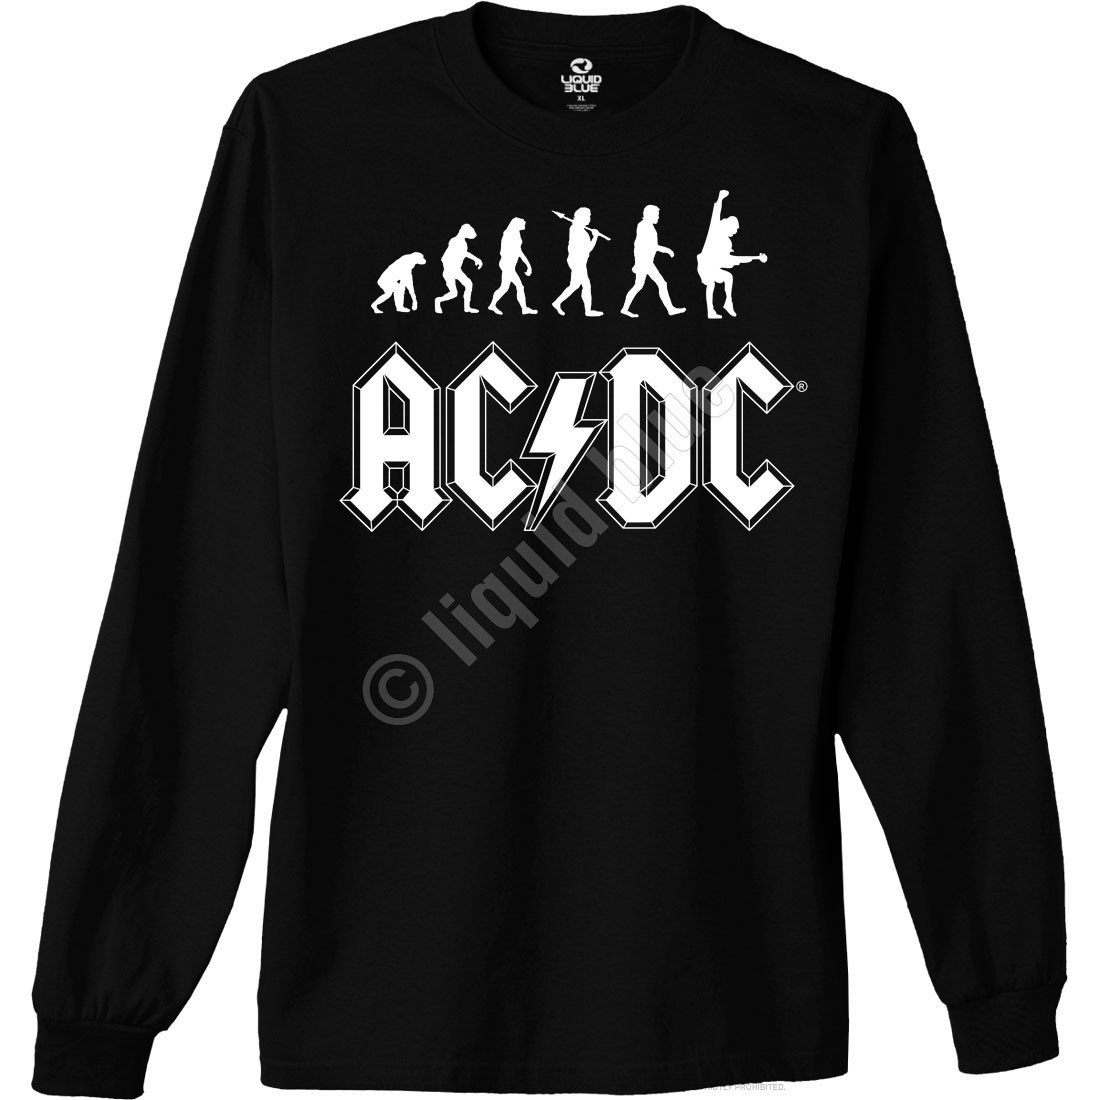 Rock Evolution Black Long Sleeve T-Shirt